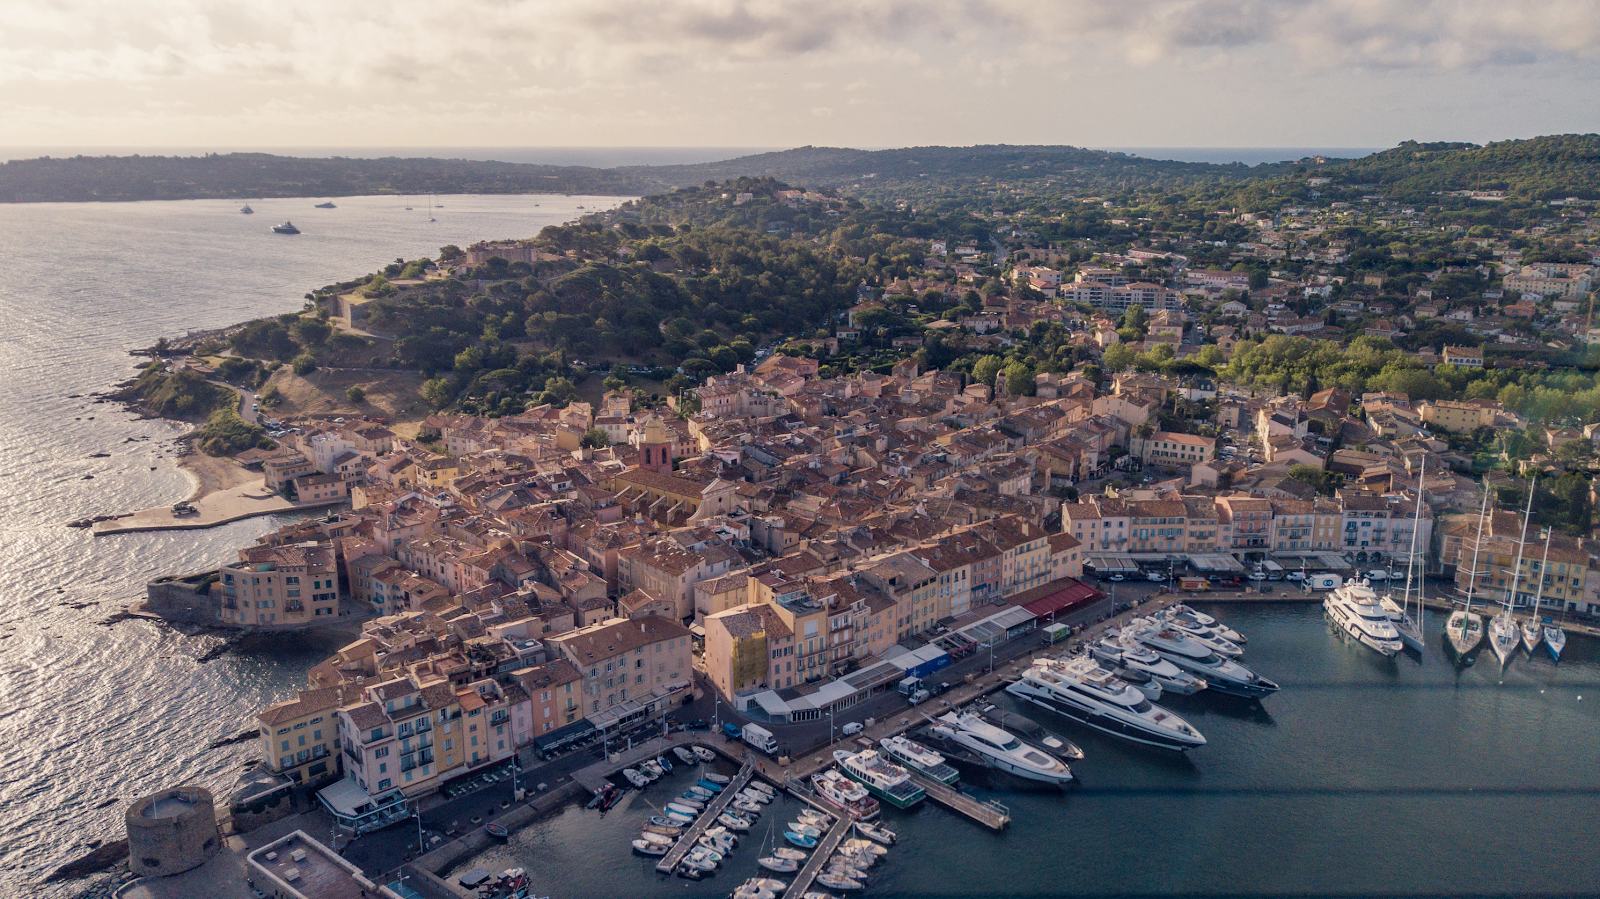 View of Saint Tropez from the sky